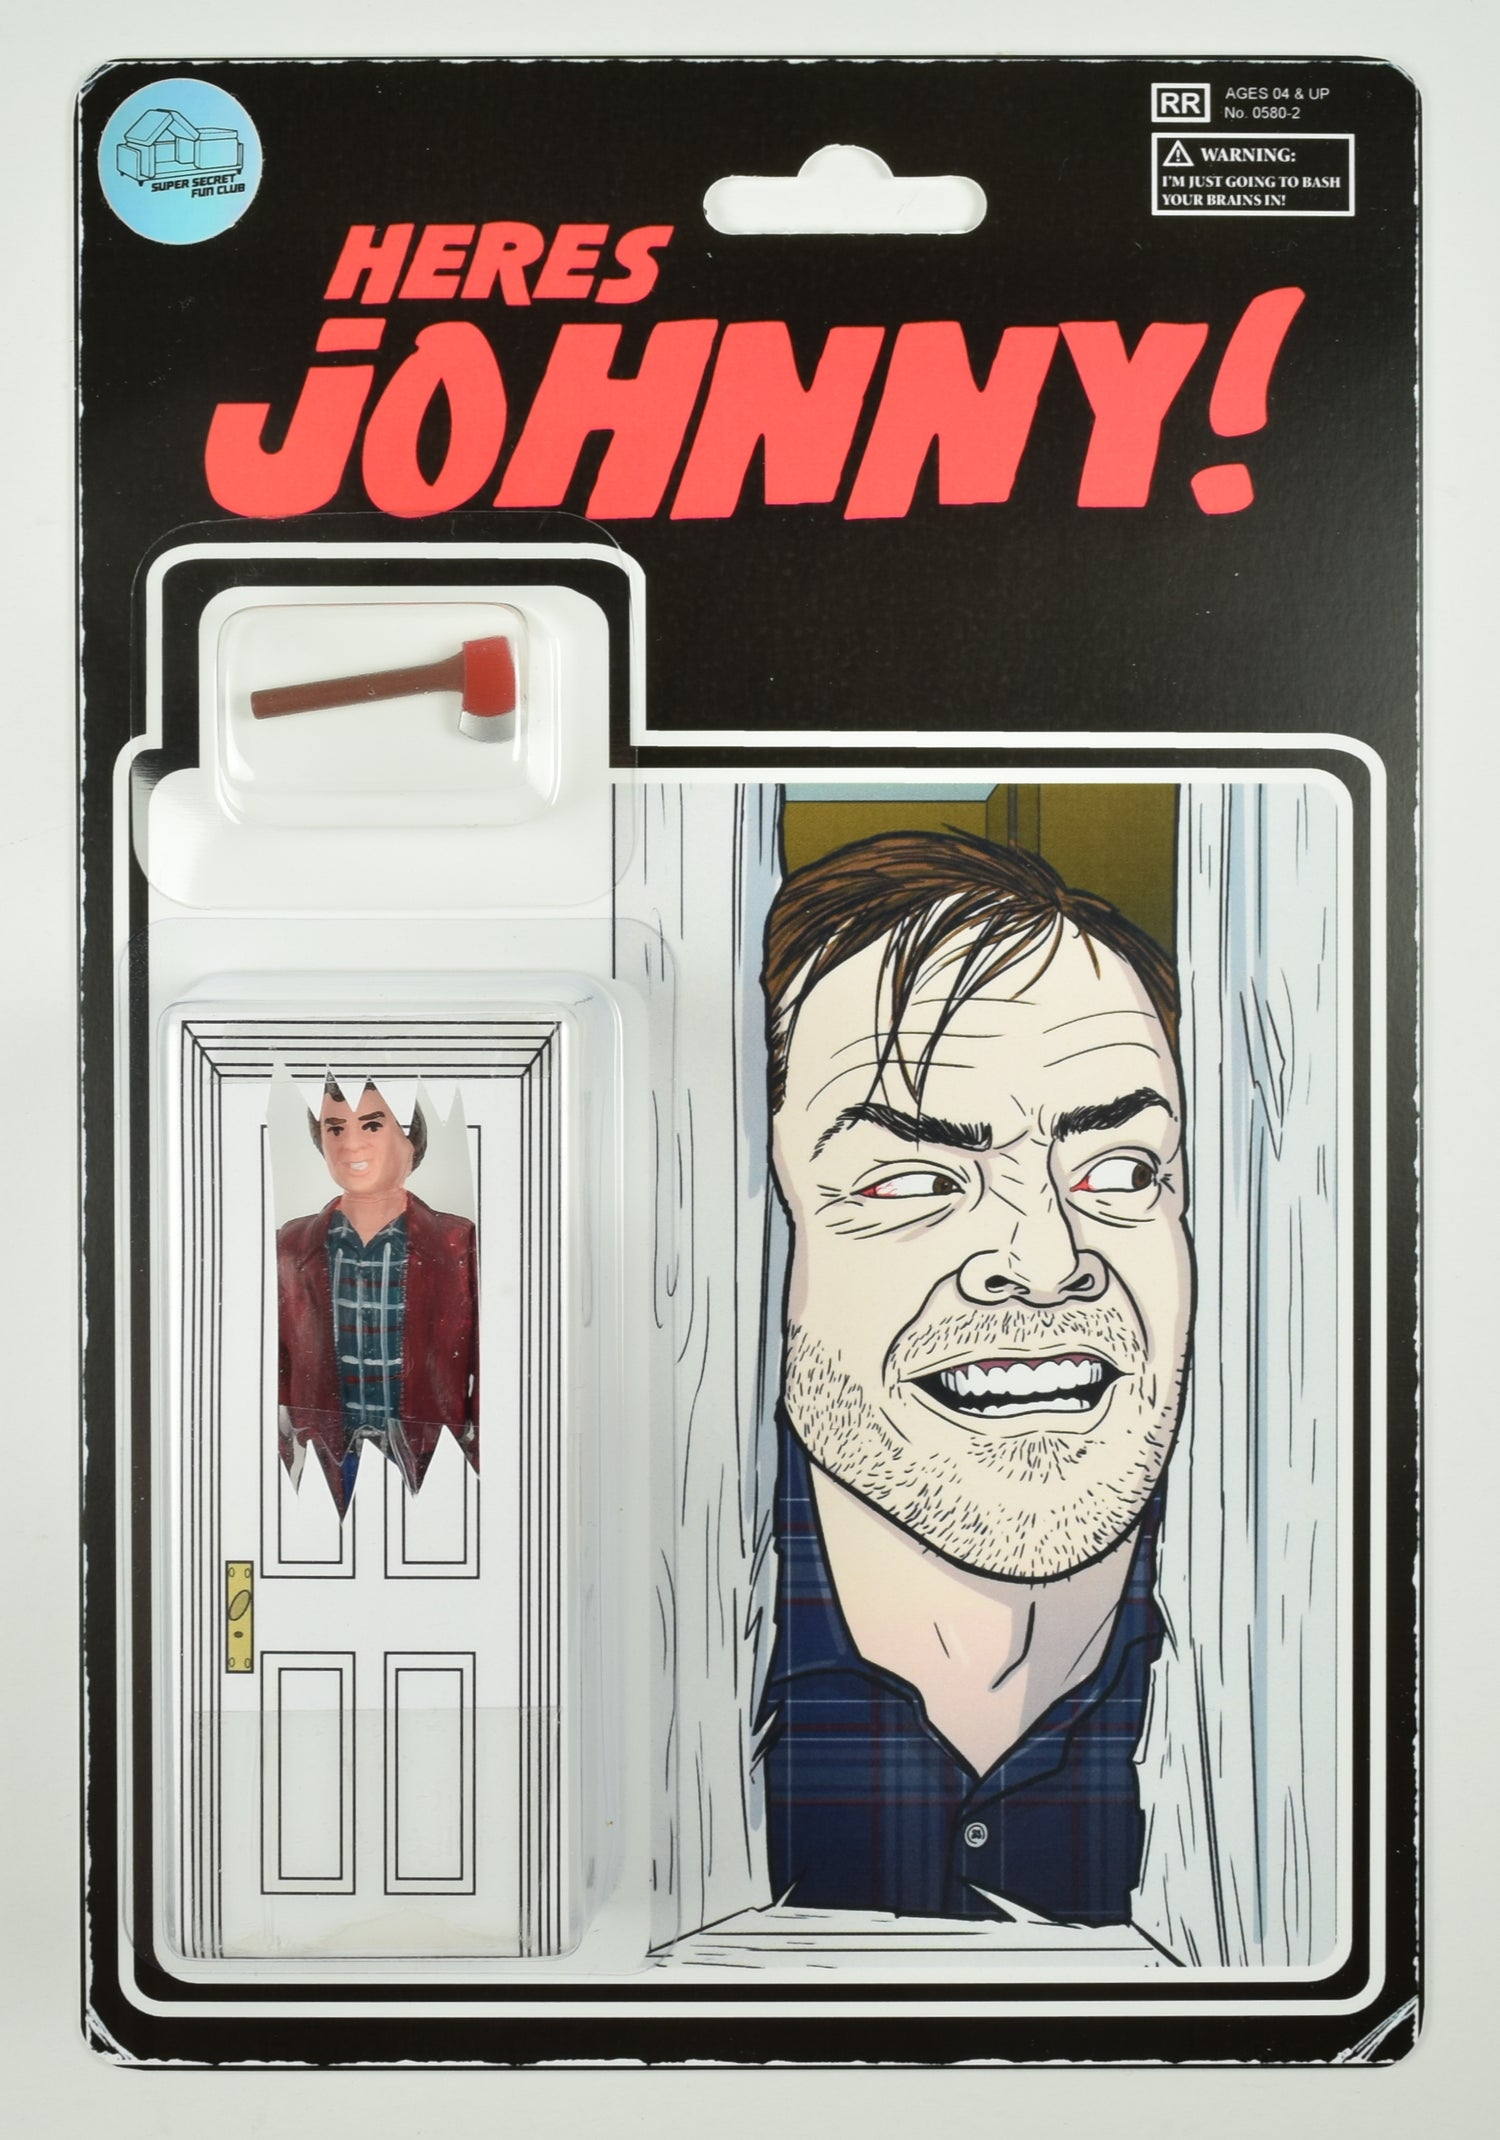 Image of Here's Johnny!